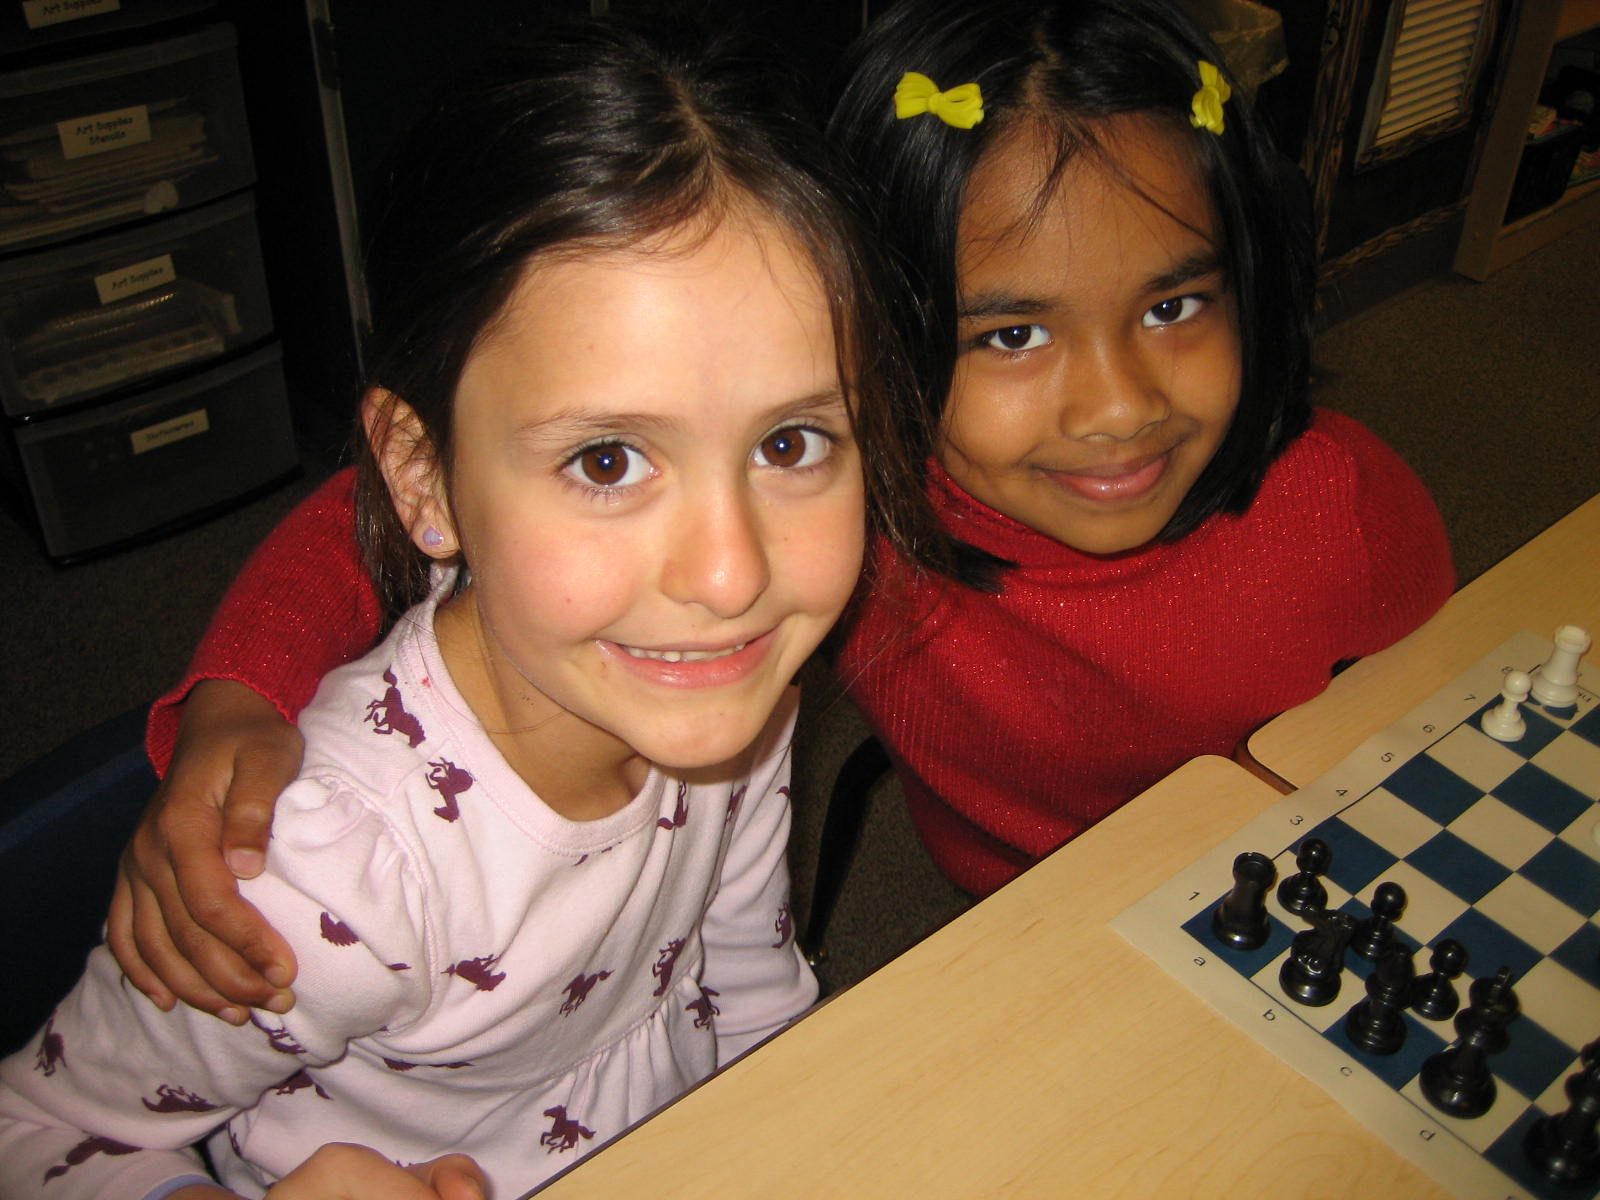 Two smiling students and a chess board